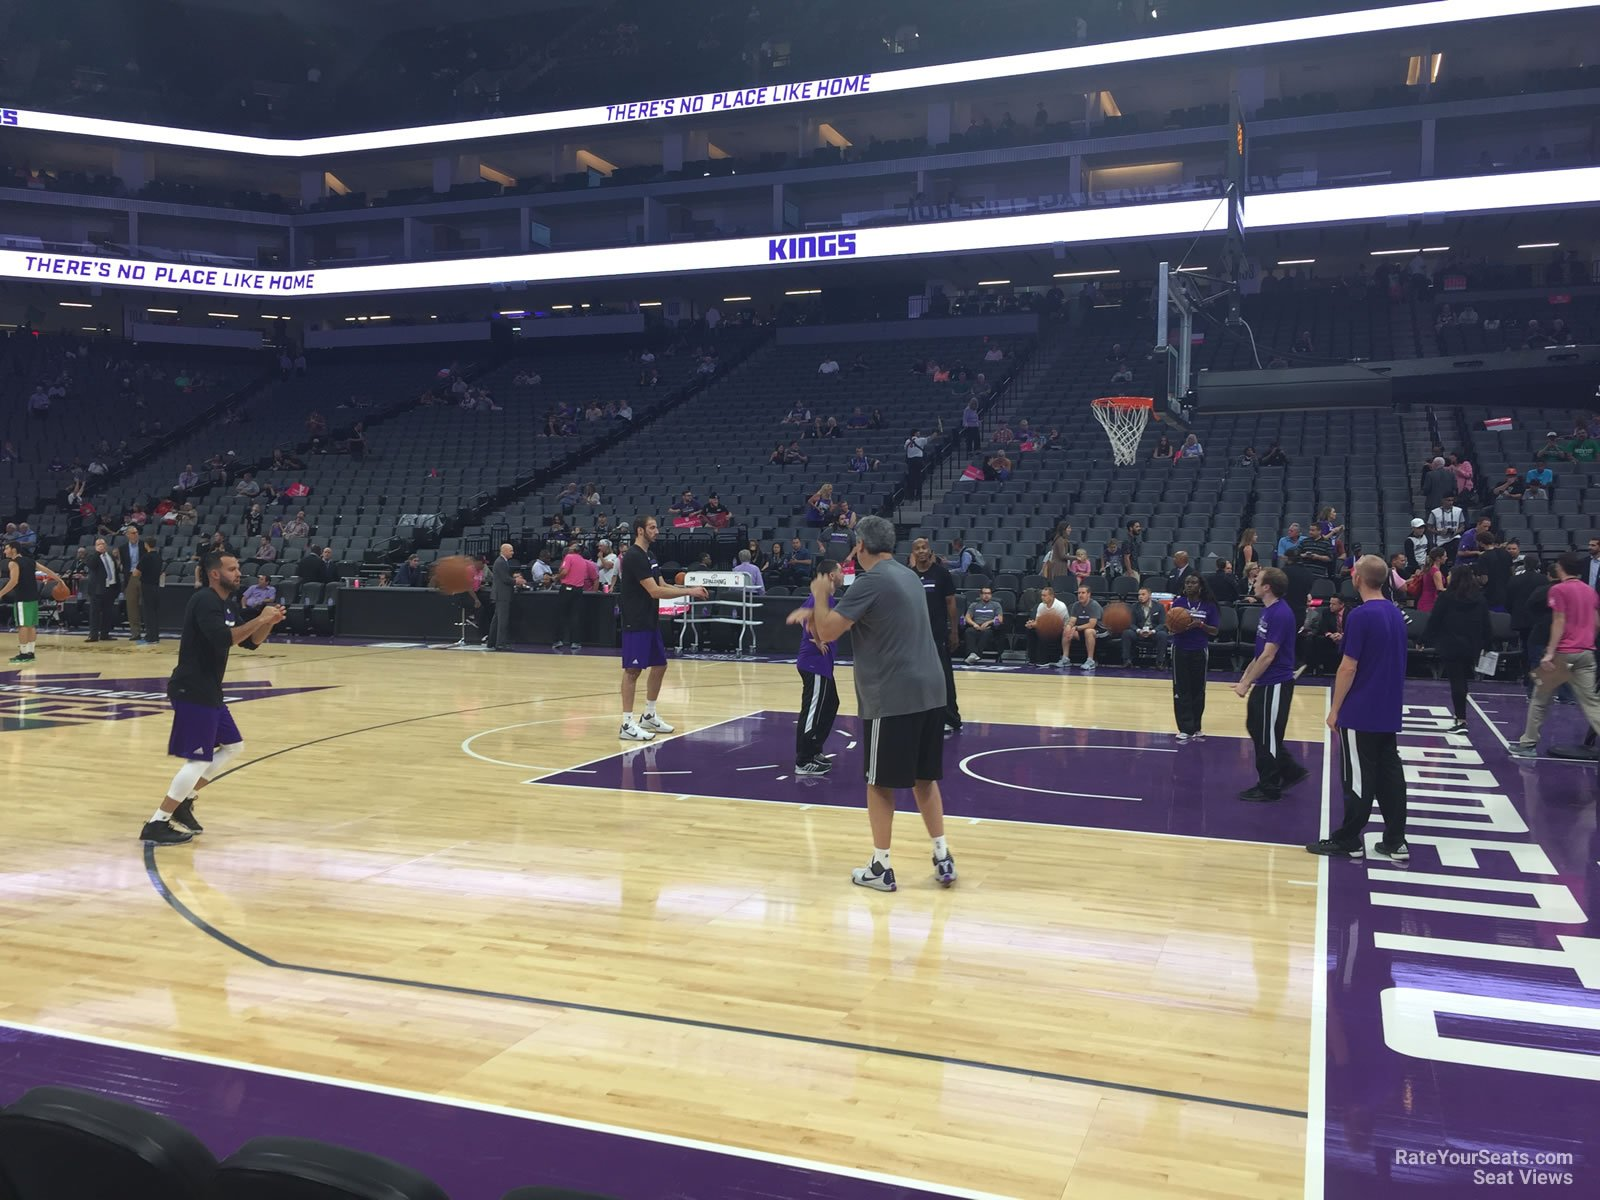 Courtside 6 seat view